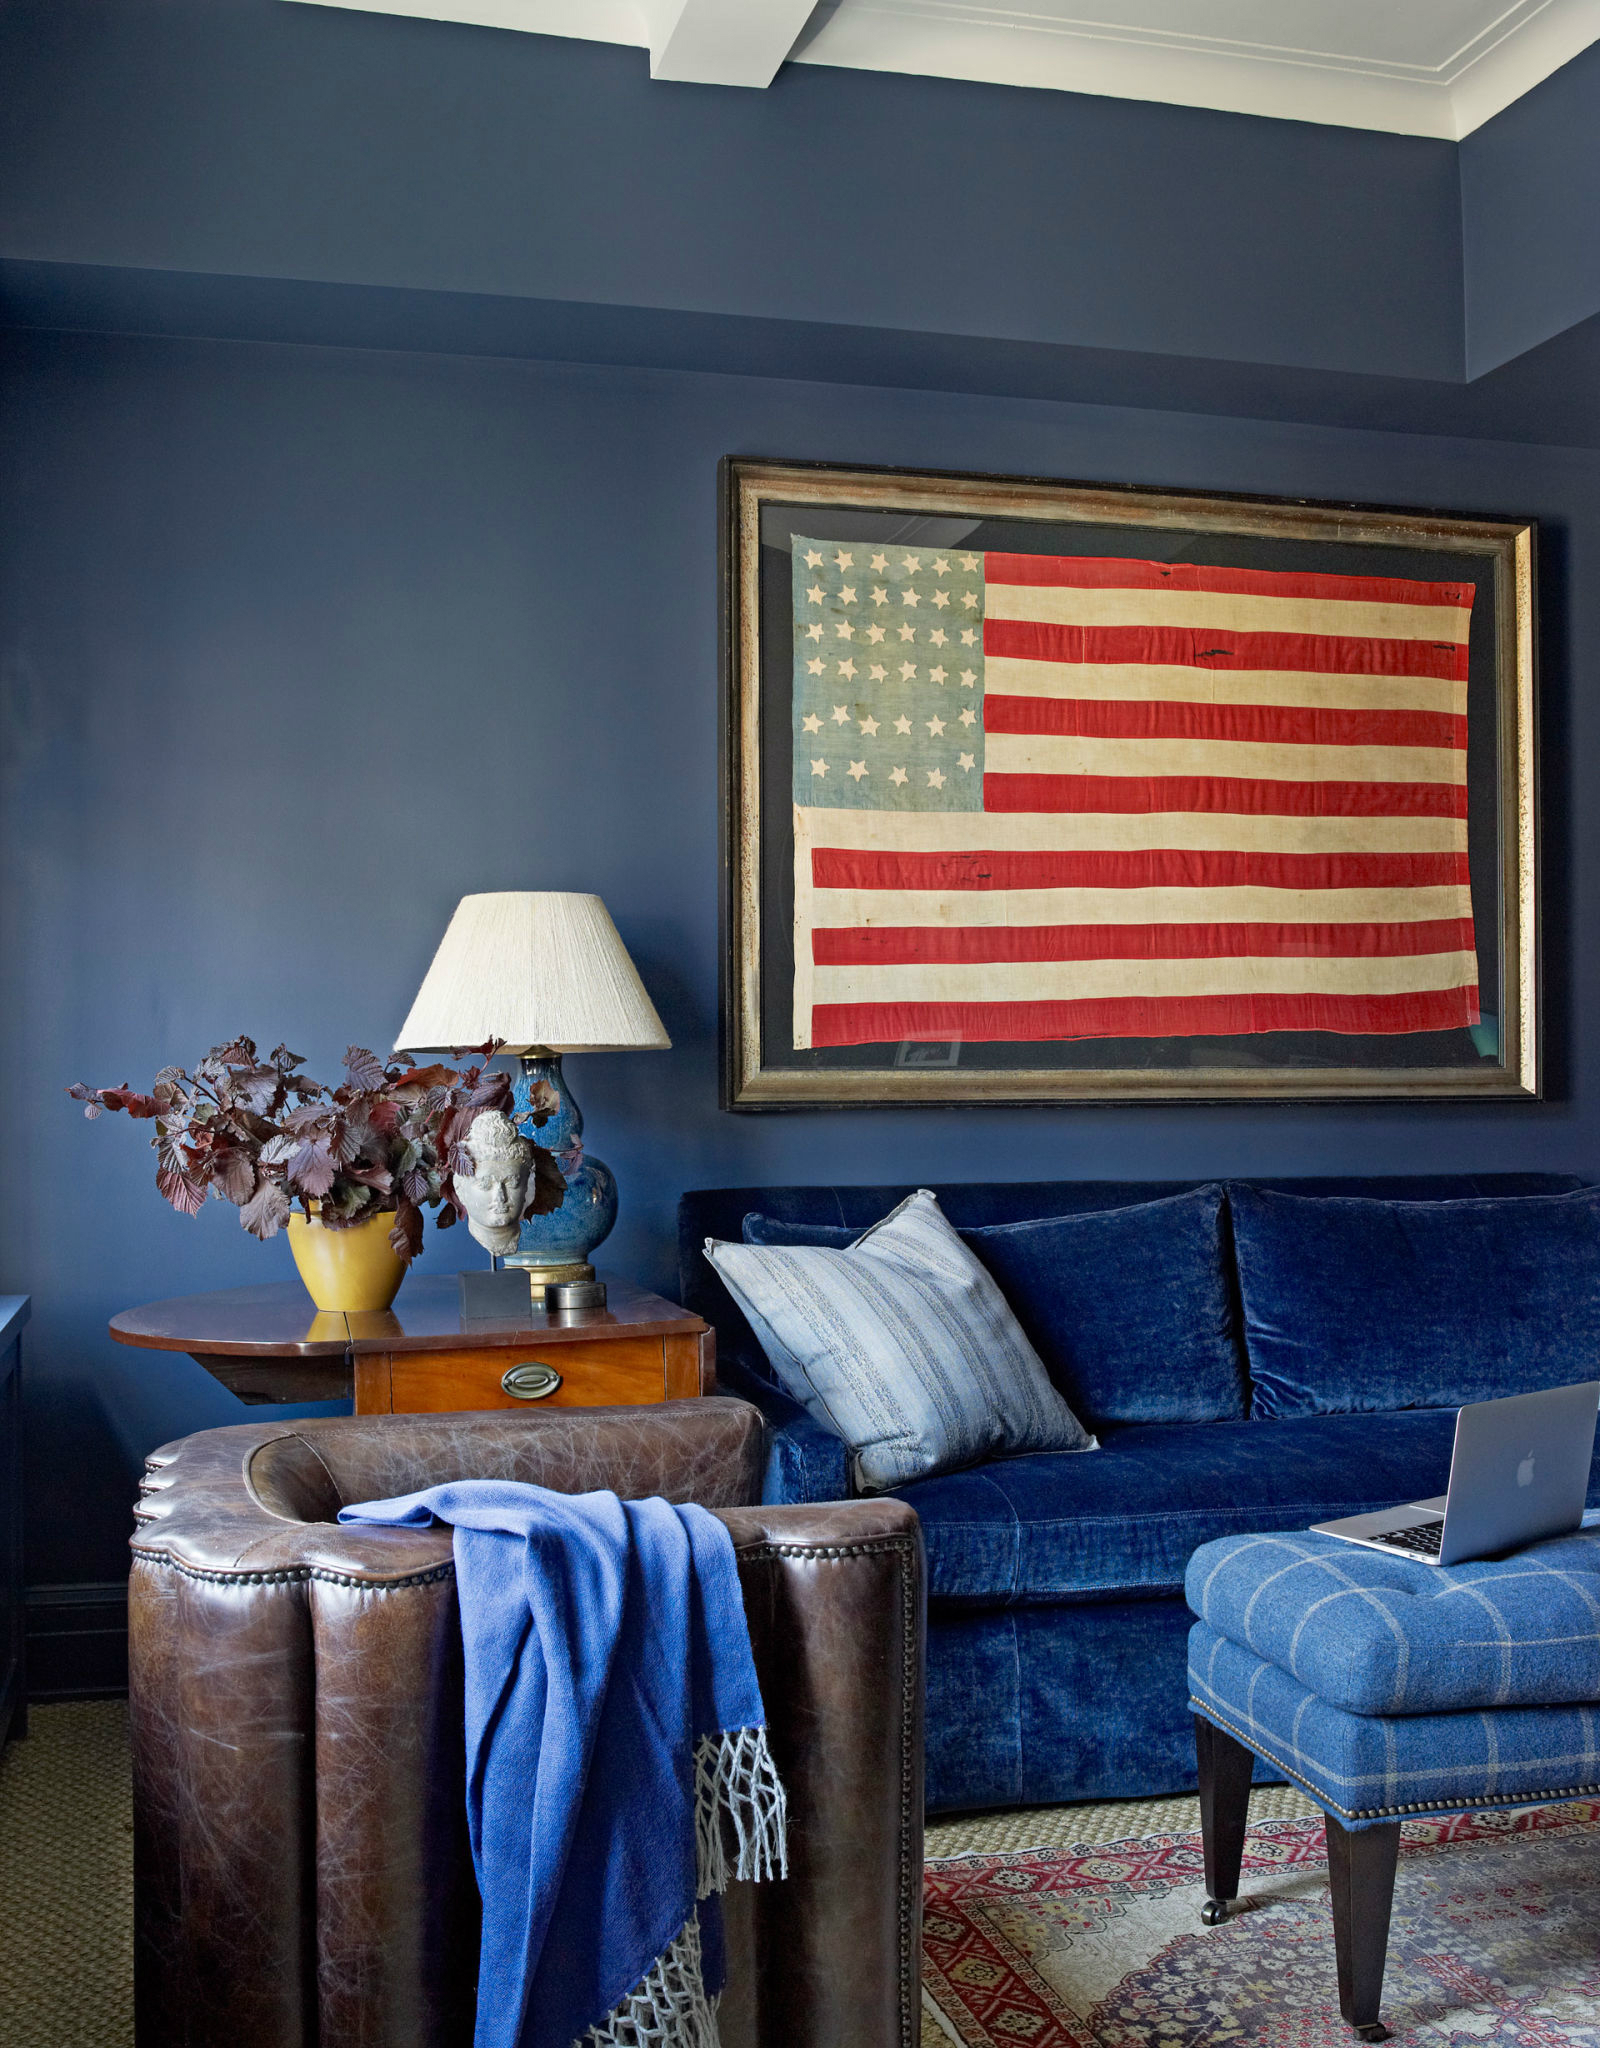 10 Chic Ways to Decorate in Red, White and Blue interior design